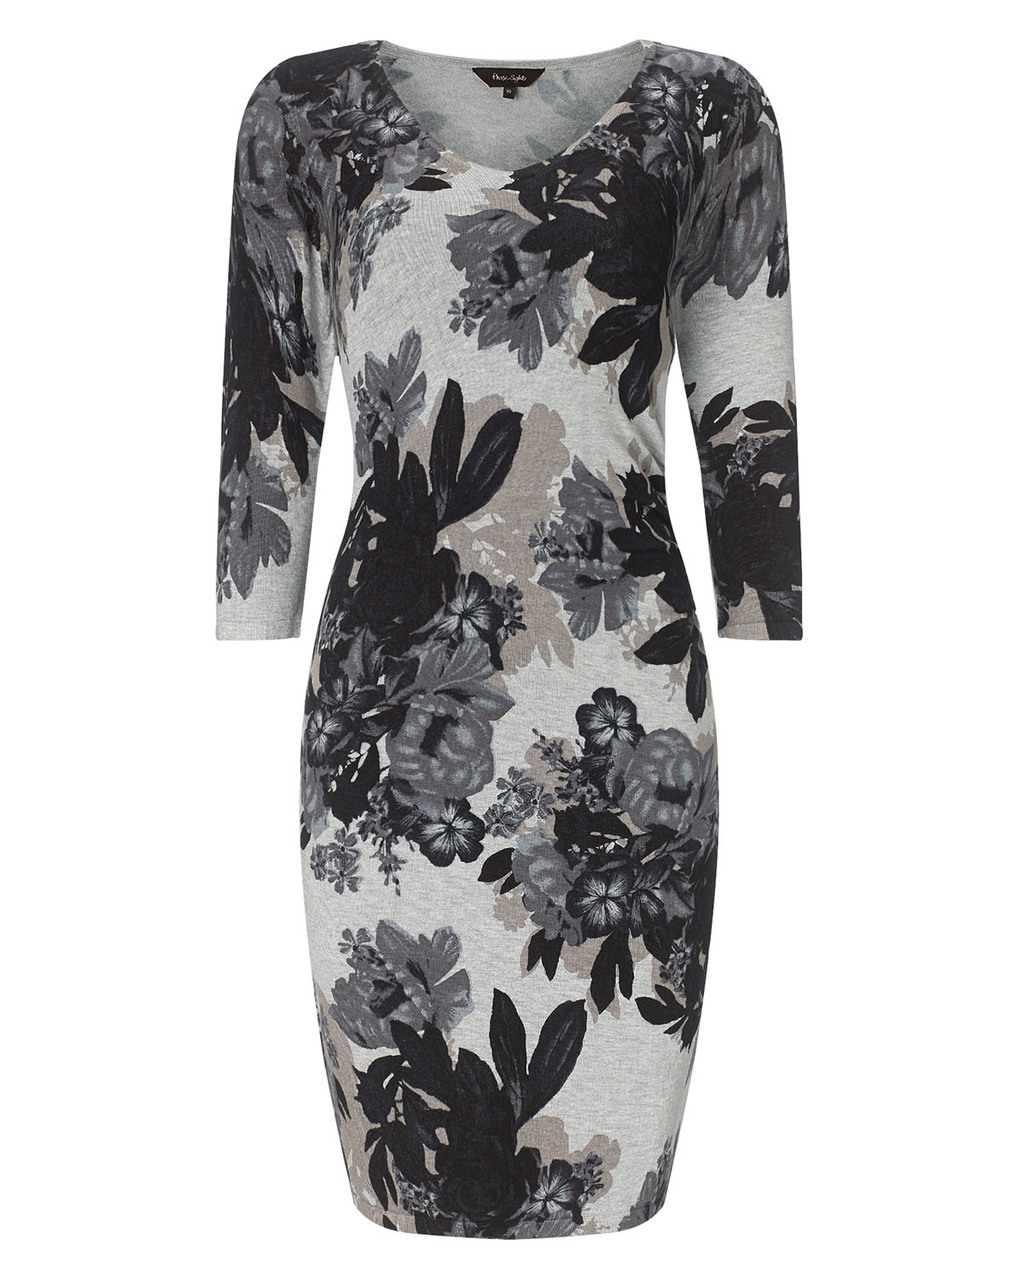 Horley Rose Print Dress - neckline: round neck; fit: tight; style: bodycon; predominant colour: charcoal; secondary colour: light grey; occasions: casual; length: just above the knee; fibres: nylon - mix; sleeve length: 3/4 length; sleeve style: standard; texture group: knits/crochet; pattern type: knitted - fine stitch; pattern size: big & busy; pattern: florals; season: a/w 2015